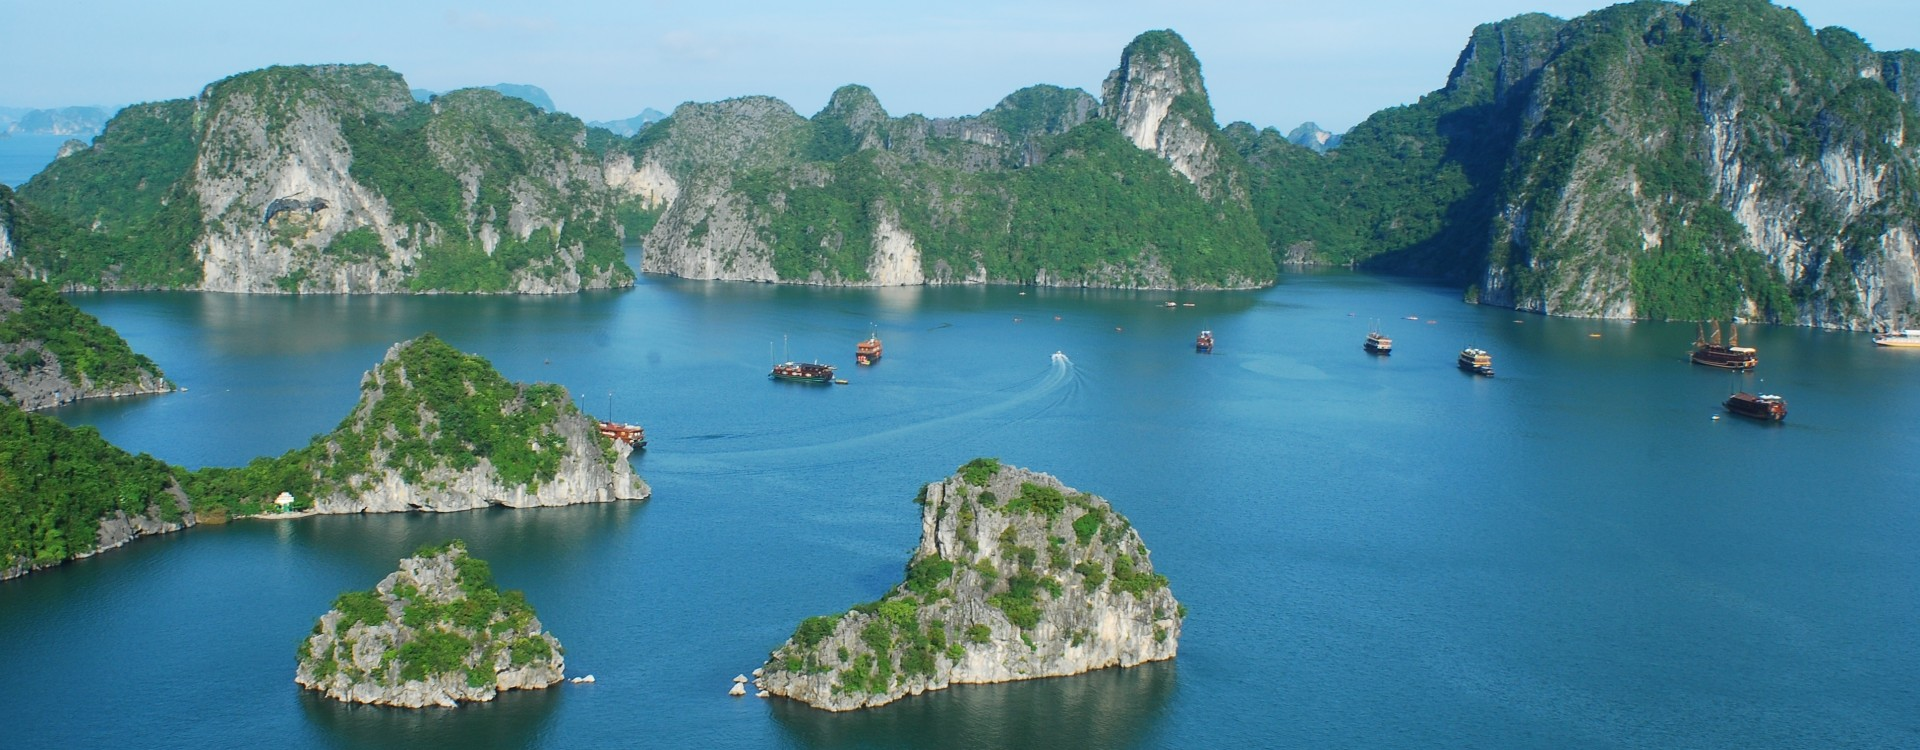 Halong Bay views